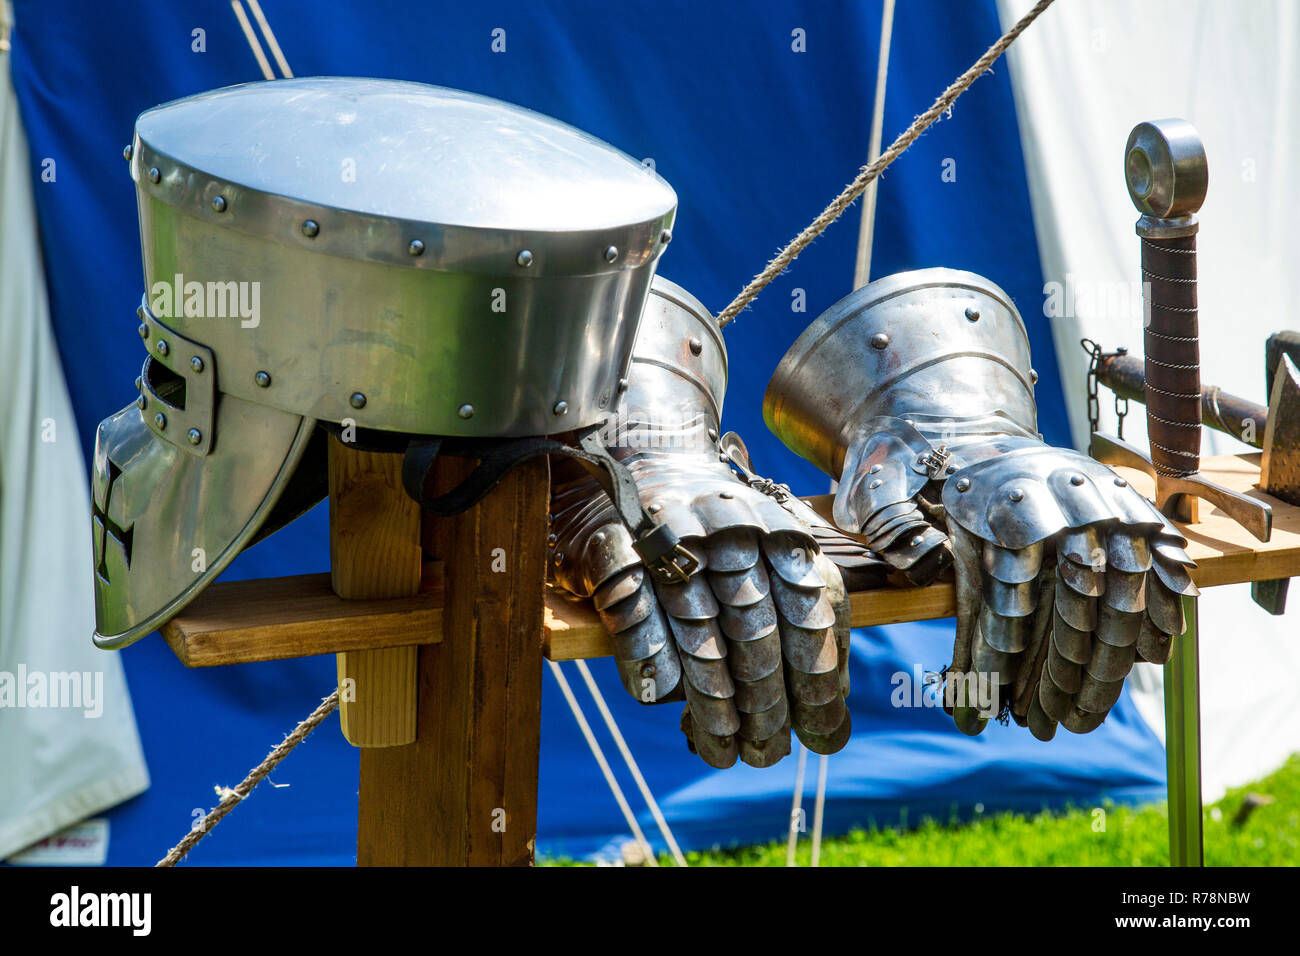 Medieval spectacle, helmet and gloves of a knight's armor, at Broich castle, Mülheim an der Ruhr, North Rhine-Westphalia Castle - Stock Image